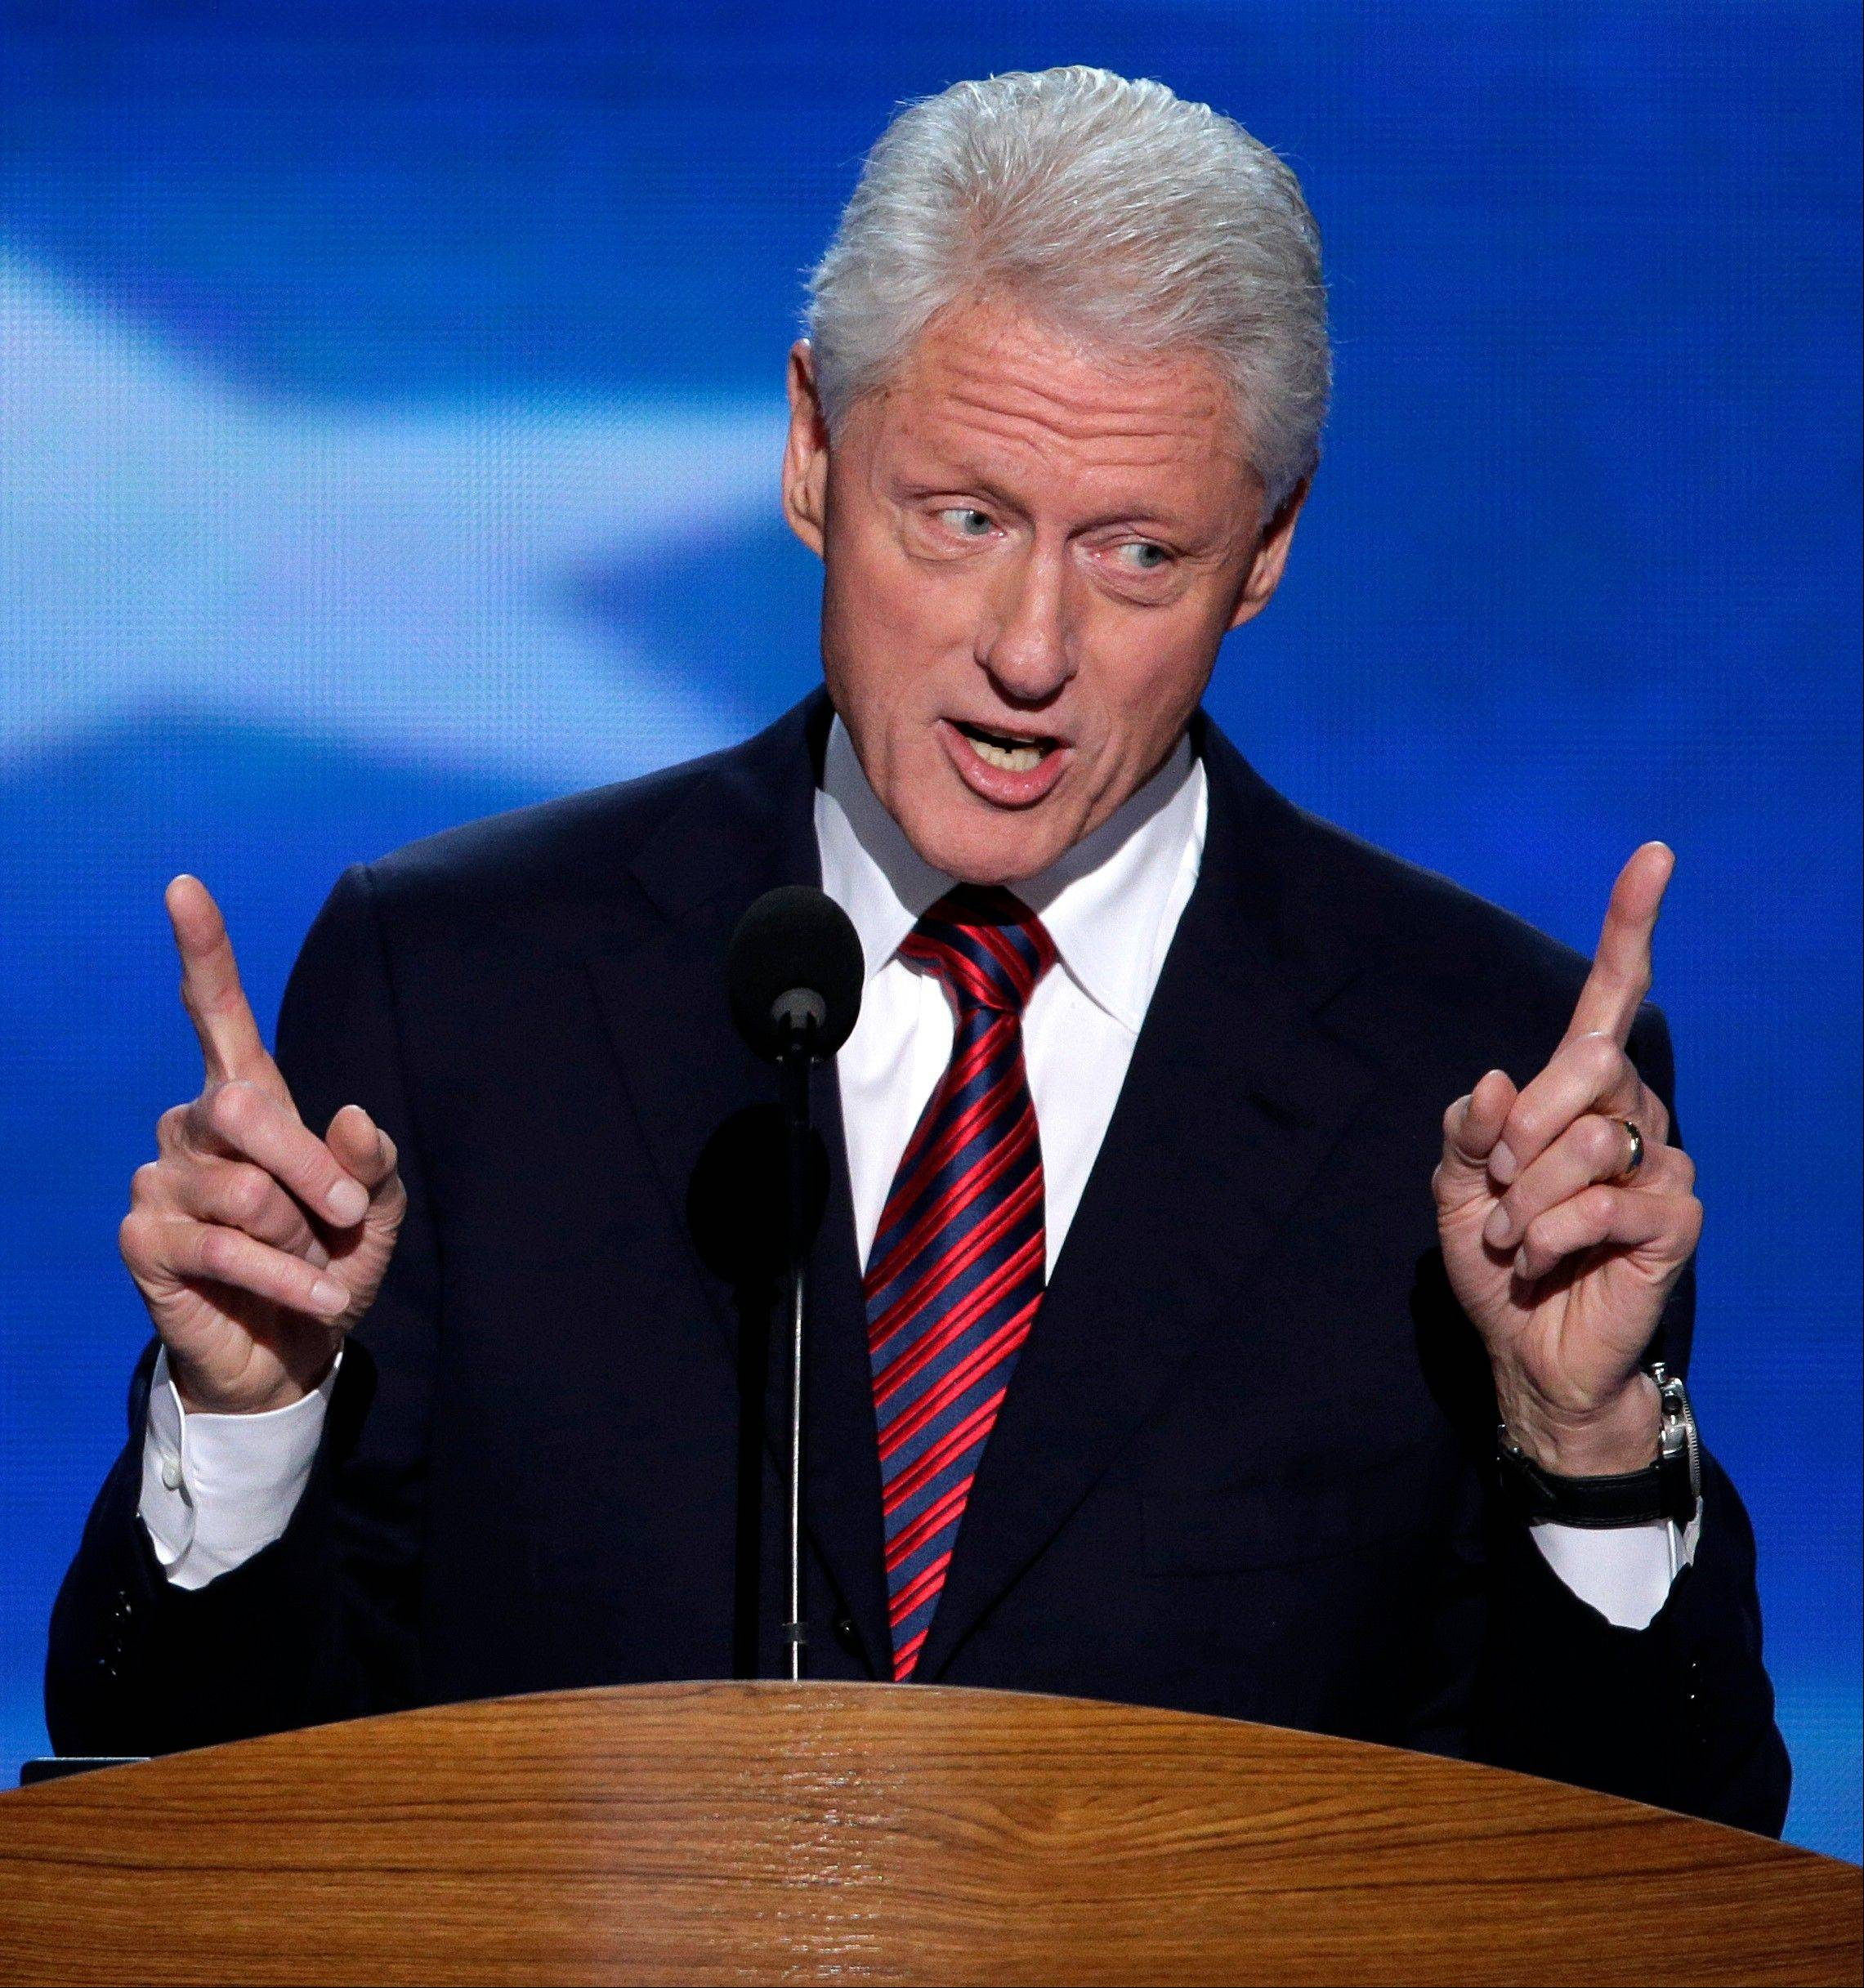 Former President Bill Clinton addresses the Democratic National Convention in Charlotte, N.C., on Sept. 5, 2012.